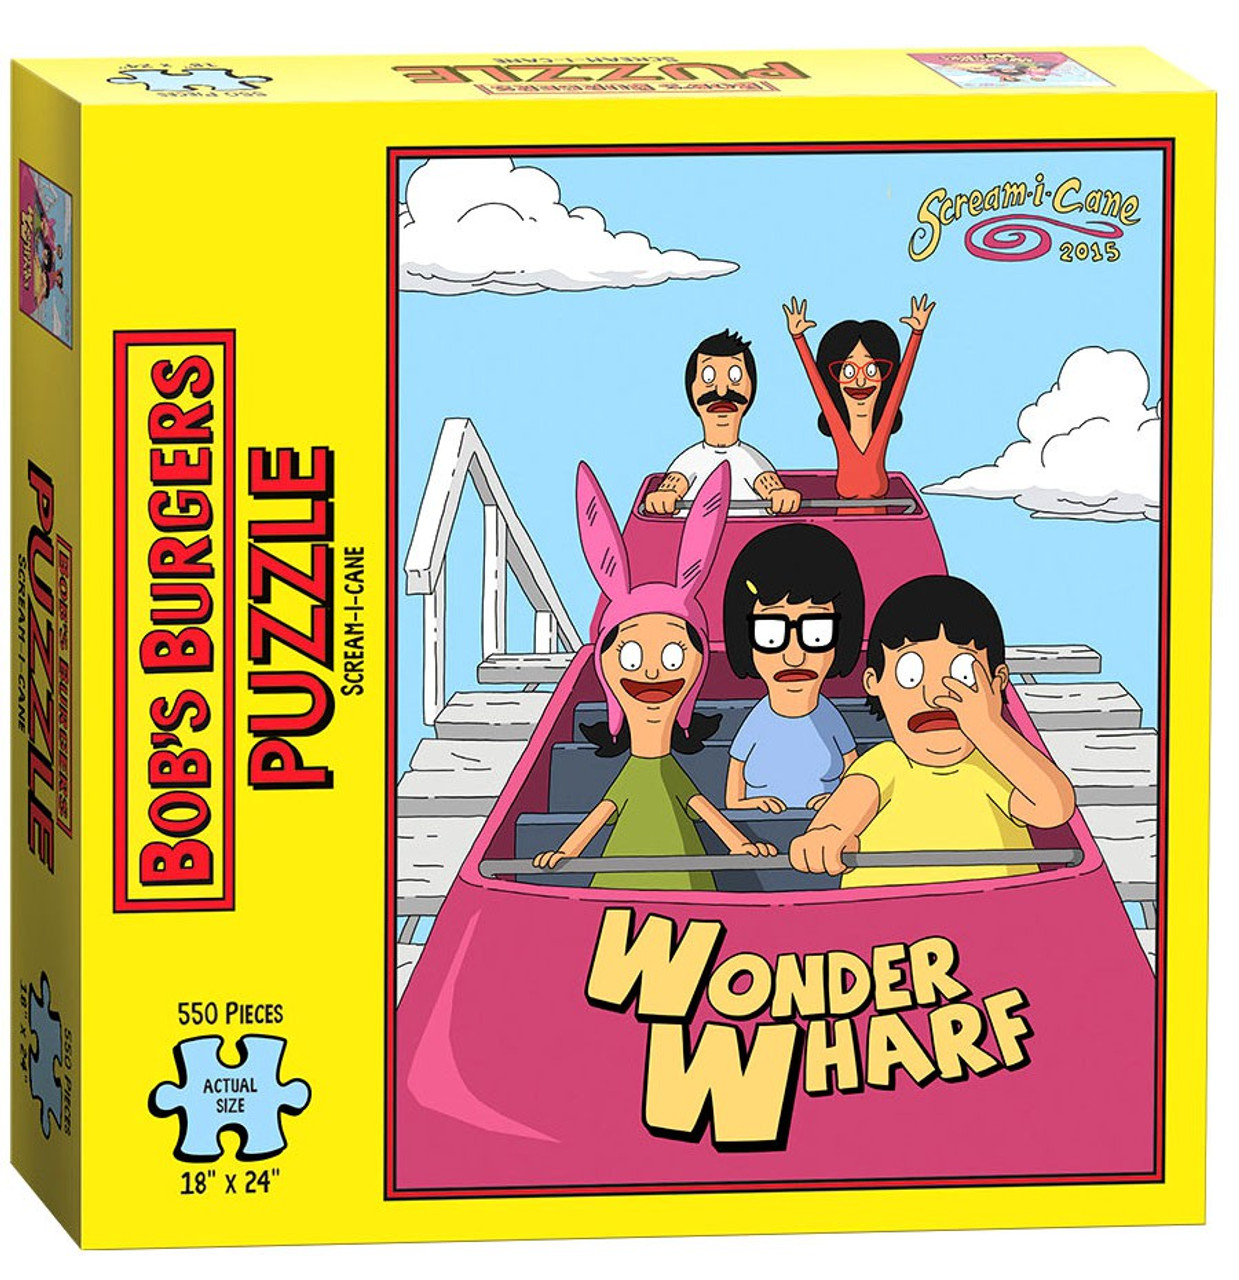 Bob's Burgers Scream-I-Cane 500 Piece Puzzle